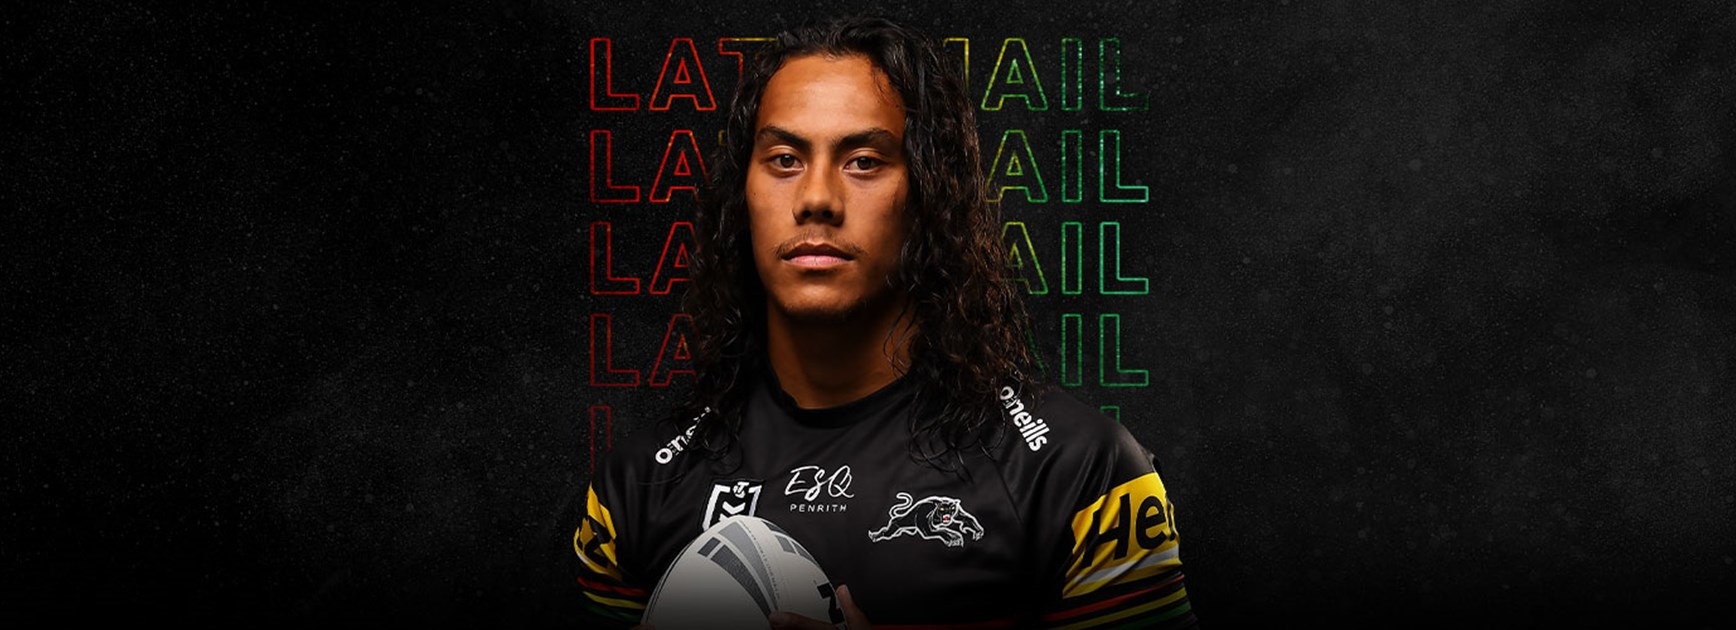 NRL Late Mail: Round 10